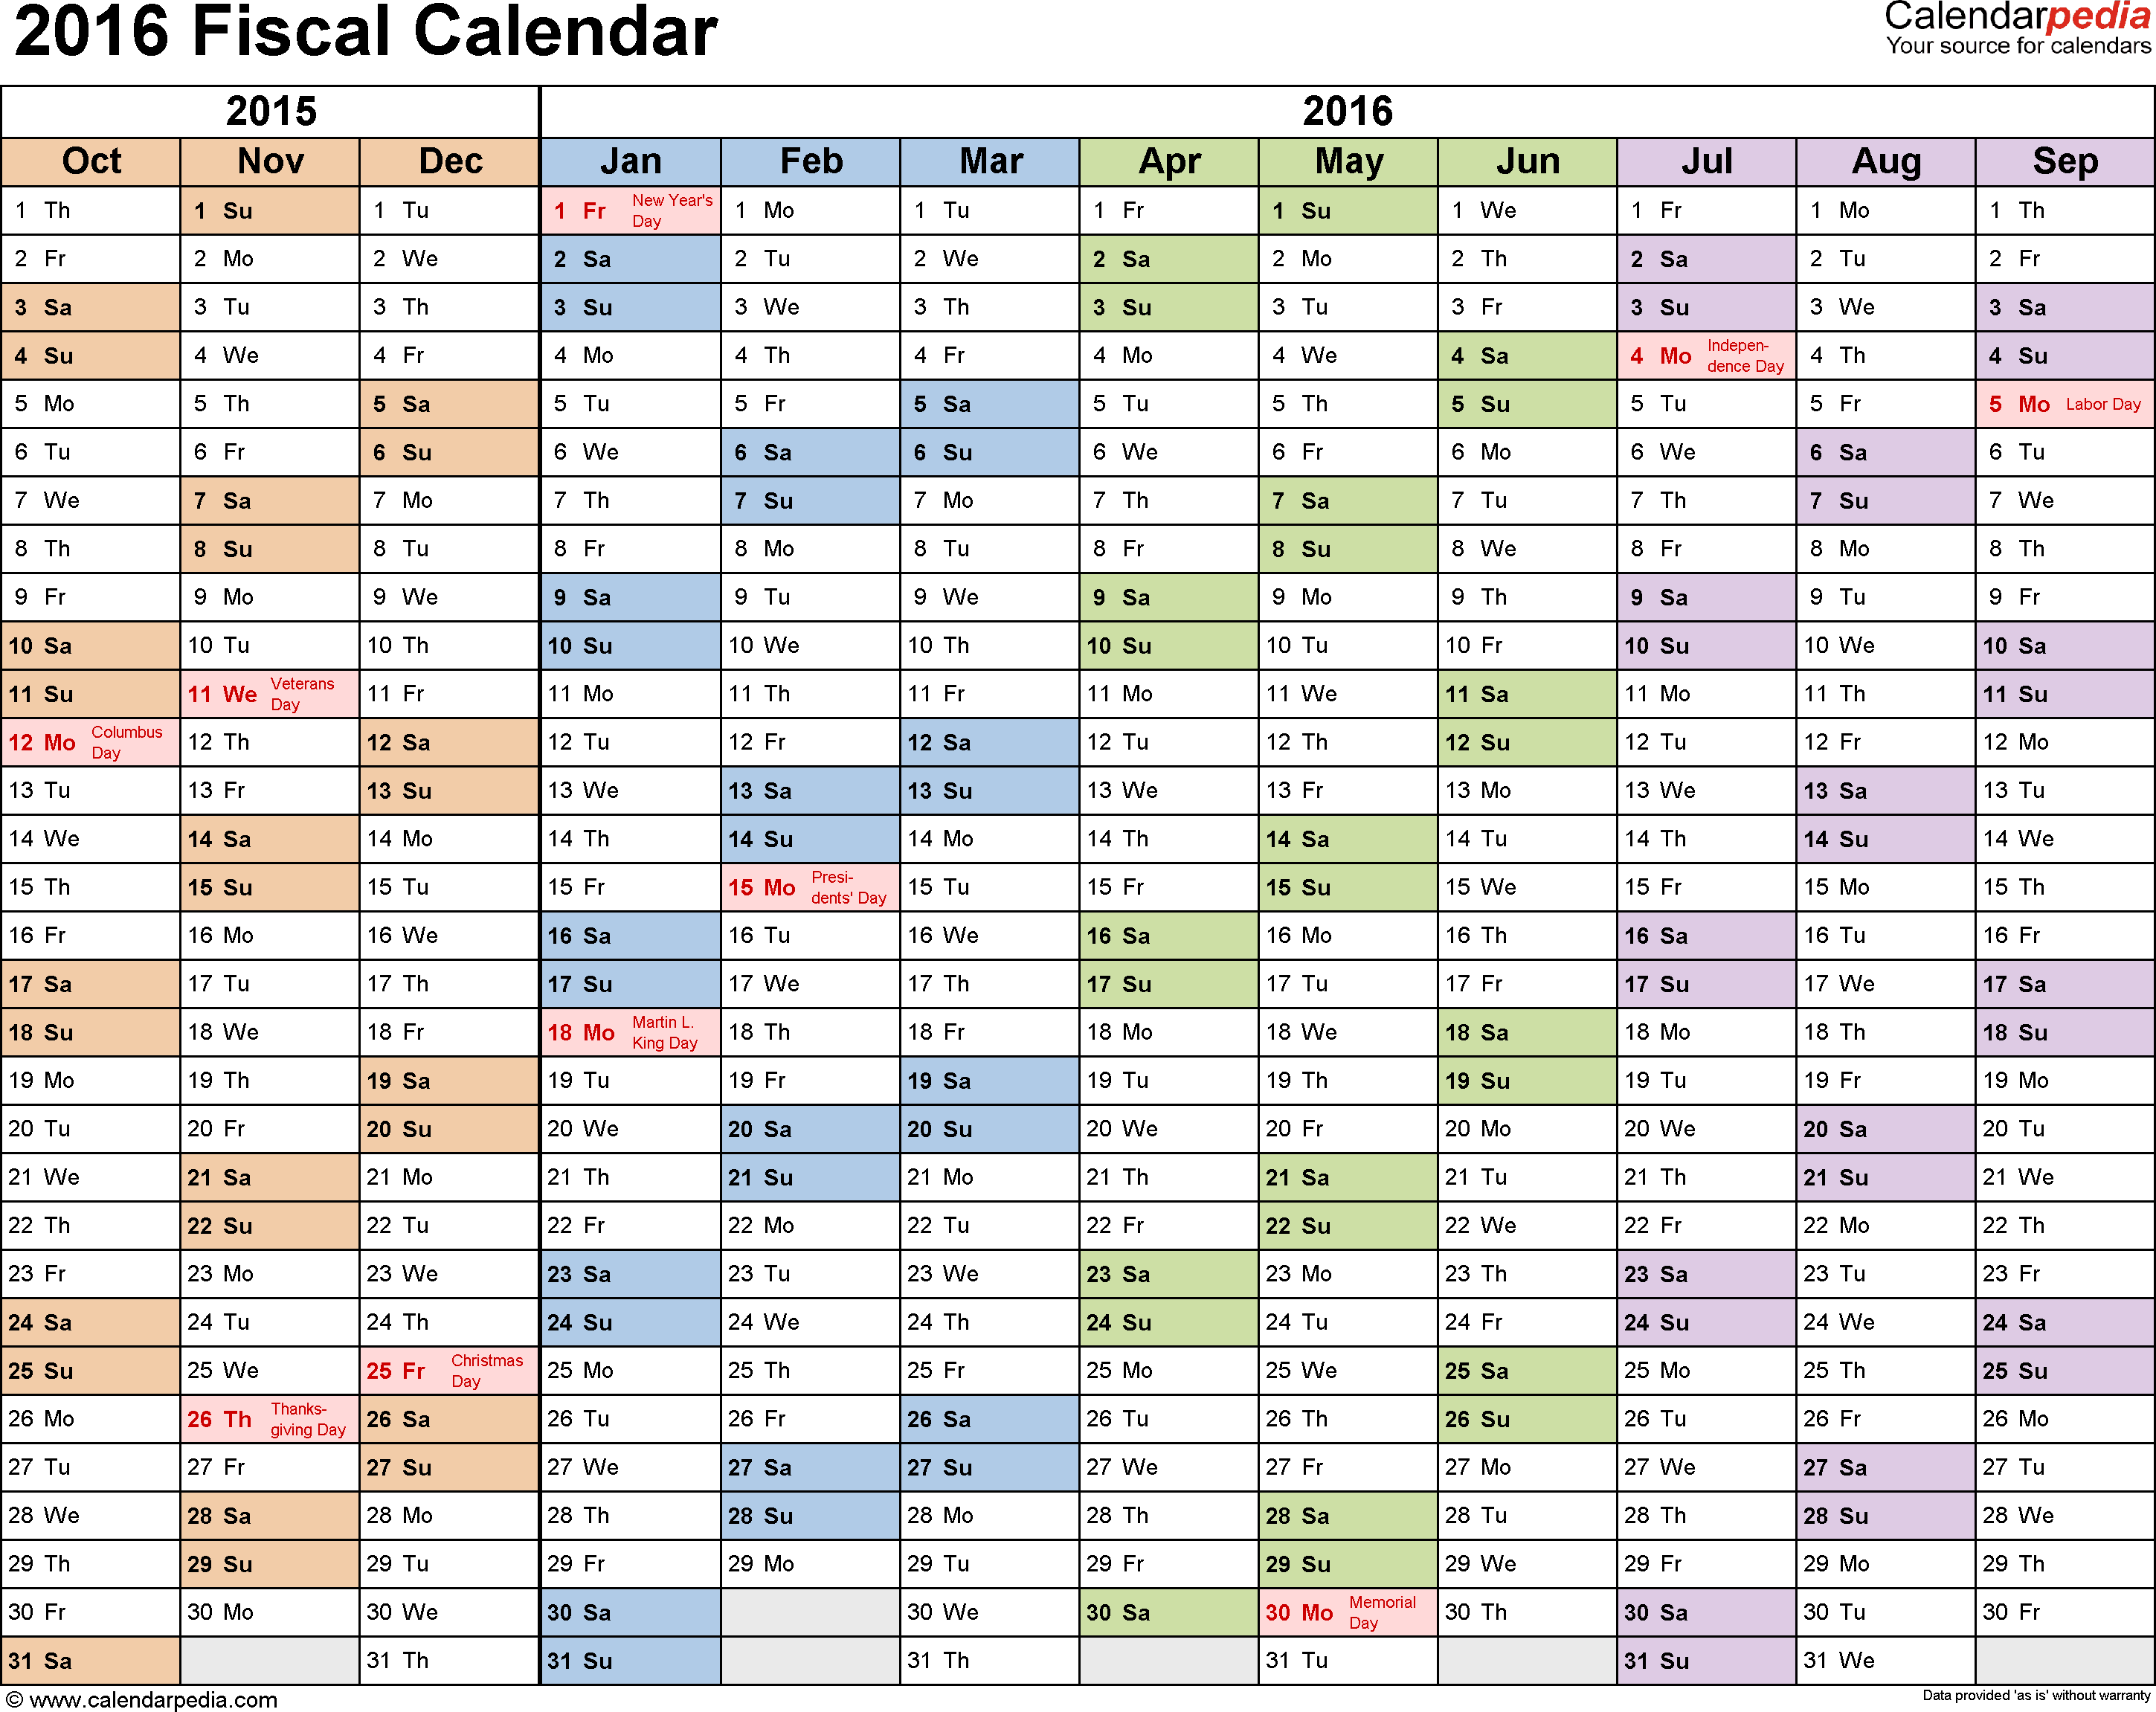 Template 1: Fiscal year calendar 2016 for PDF, landscape orientation, months horizontally, 1 page